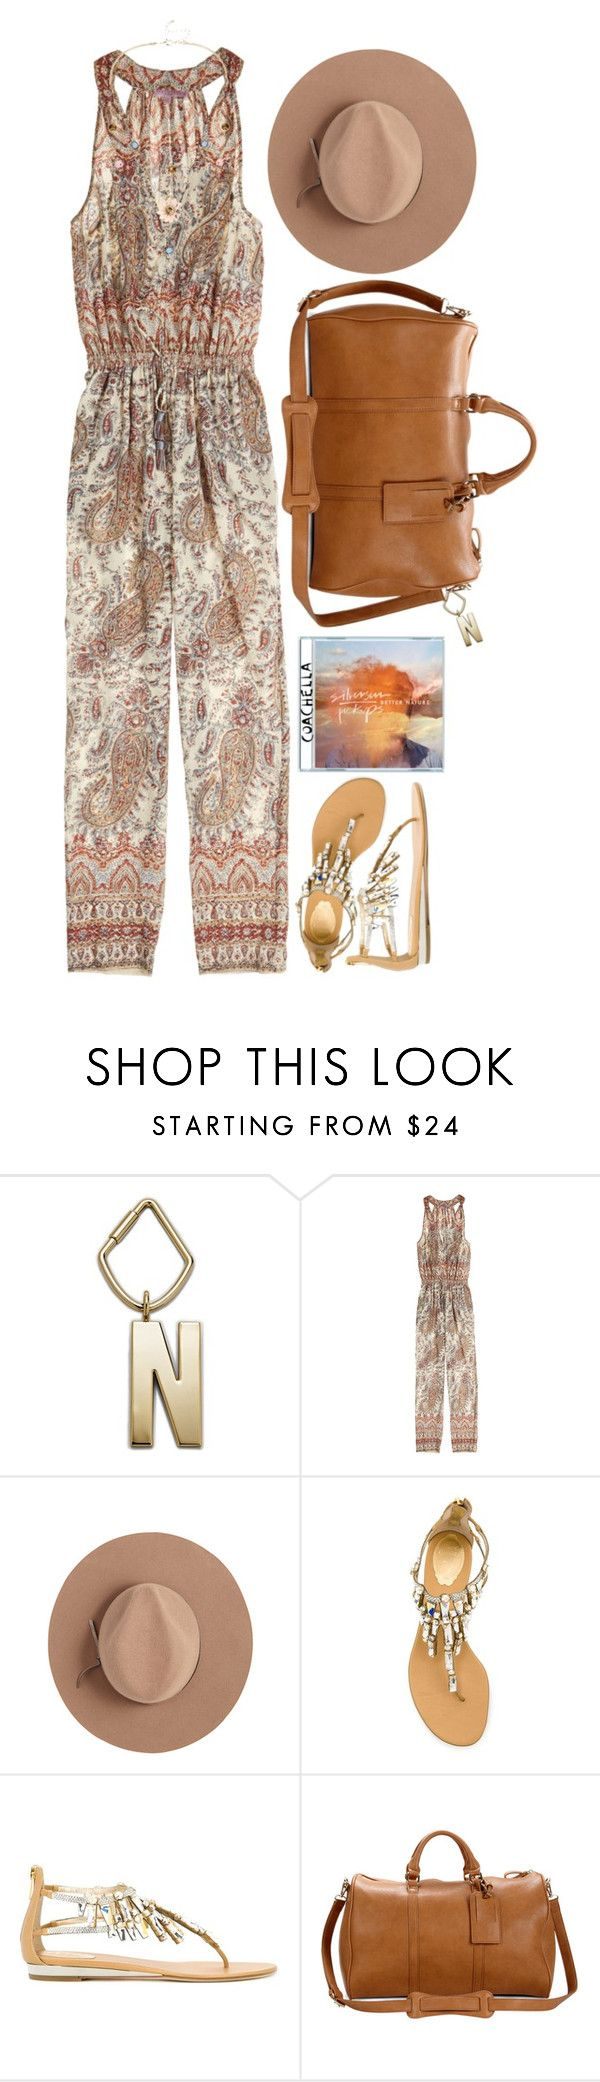 """""""Packing For Coachella: Weekend 1 Night 2"""" by hollowpoint-smile ❤ liked on Polyvore featuring FOSSIL, Calypso St. Barth, Satya Twena, René Caovilla, Sole Society and Mixit"""